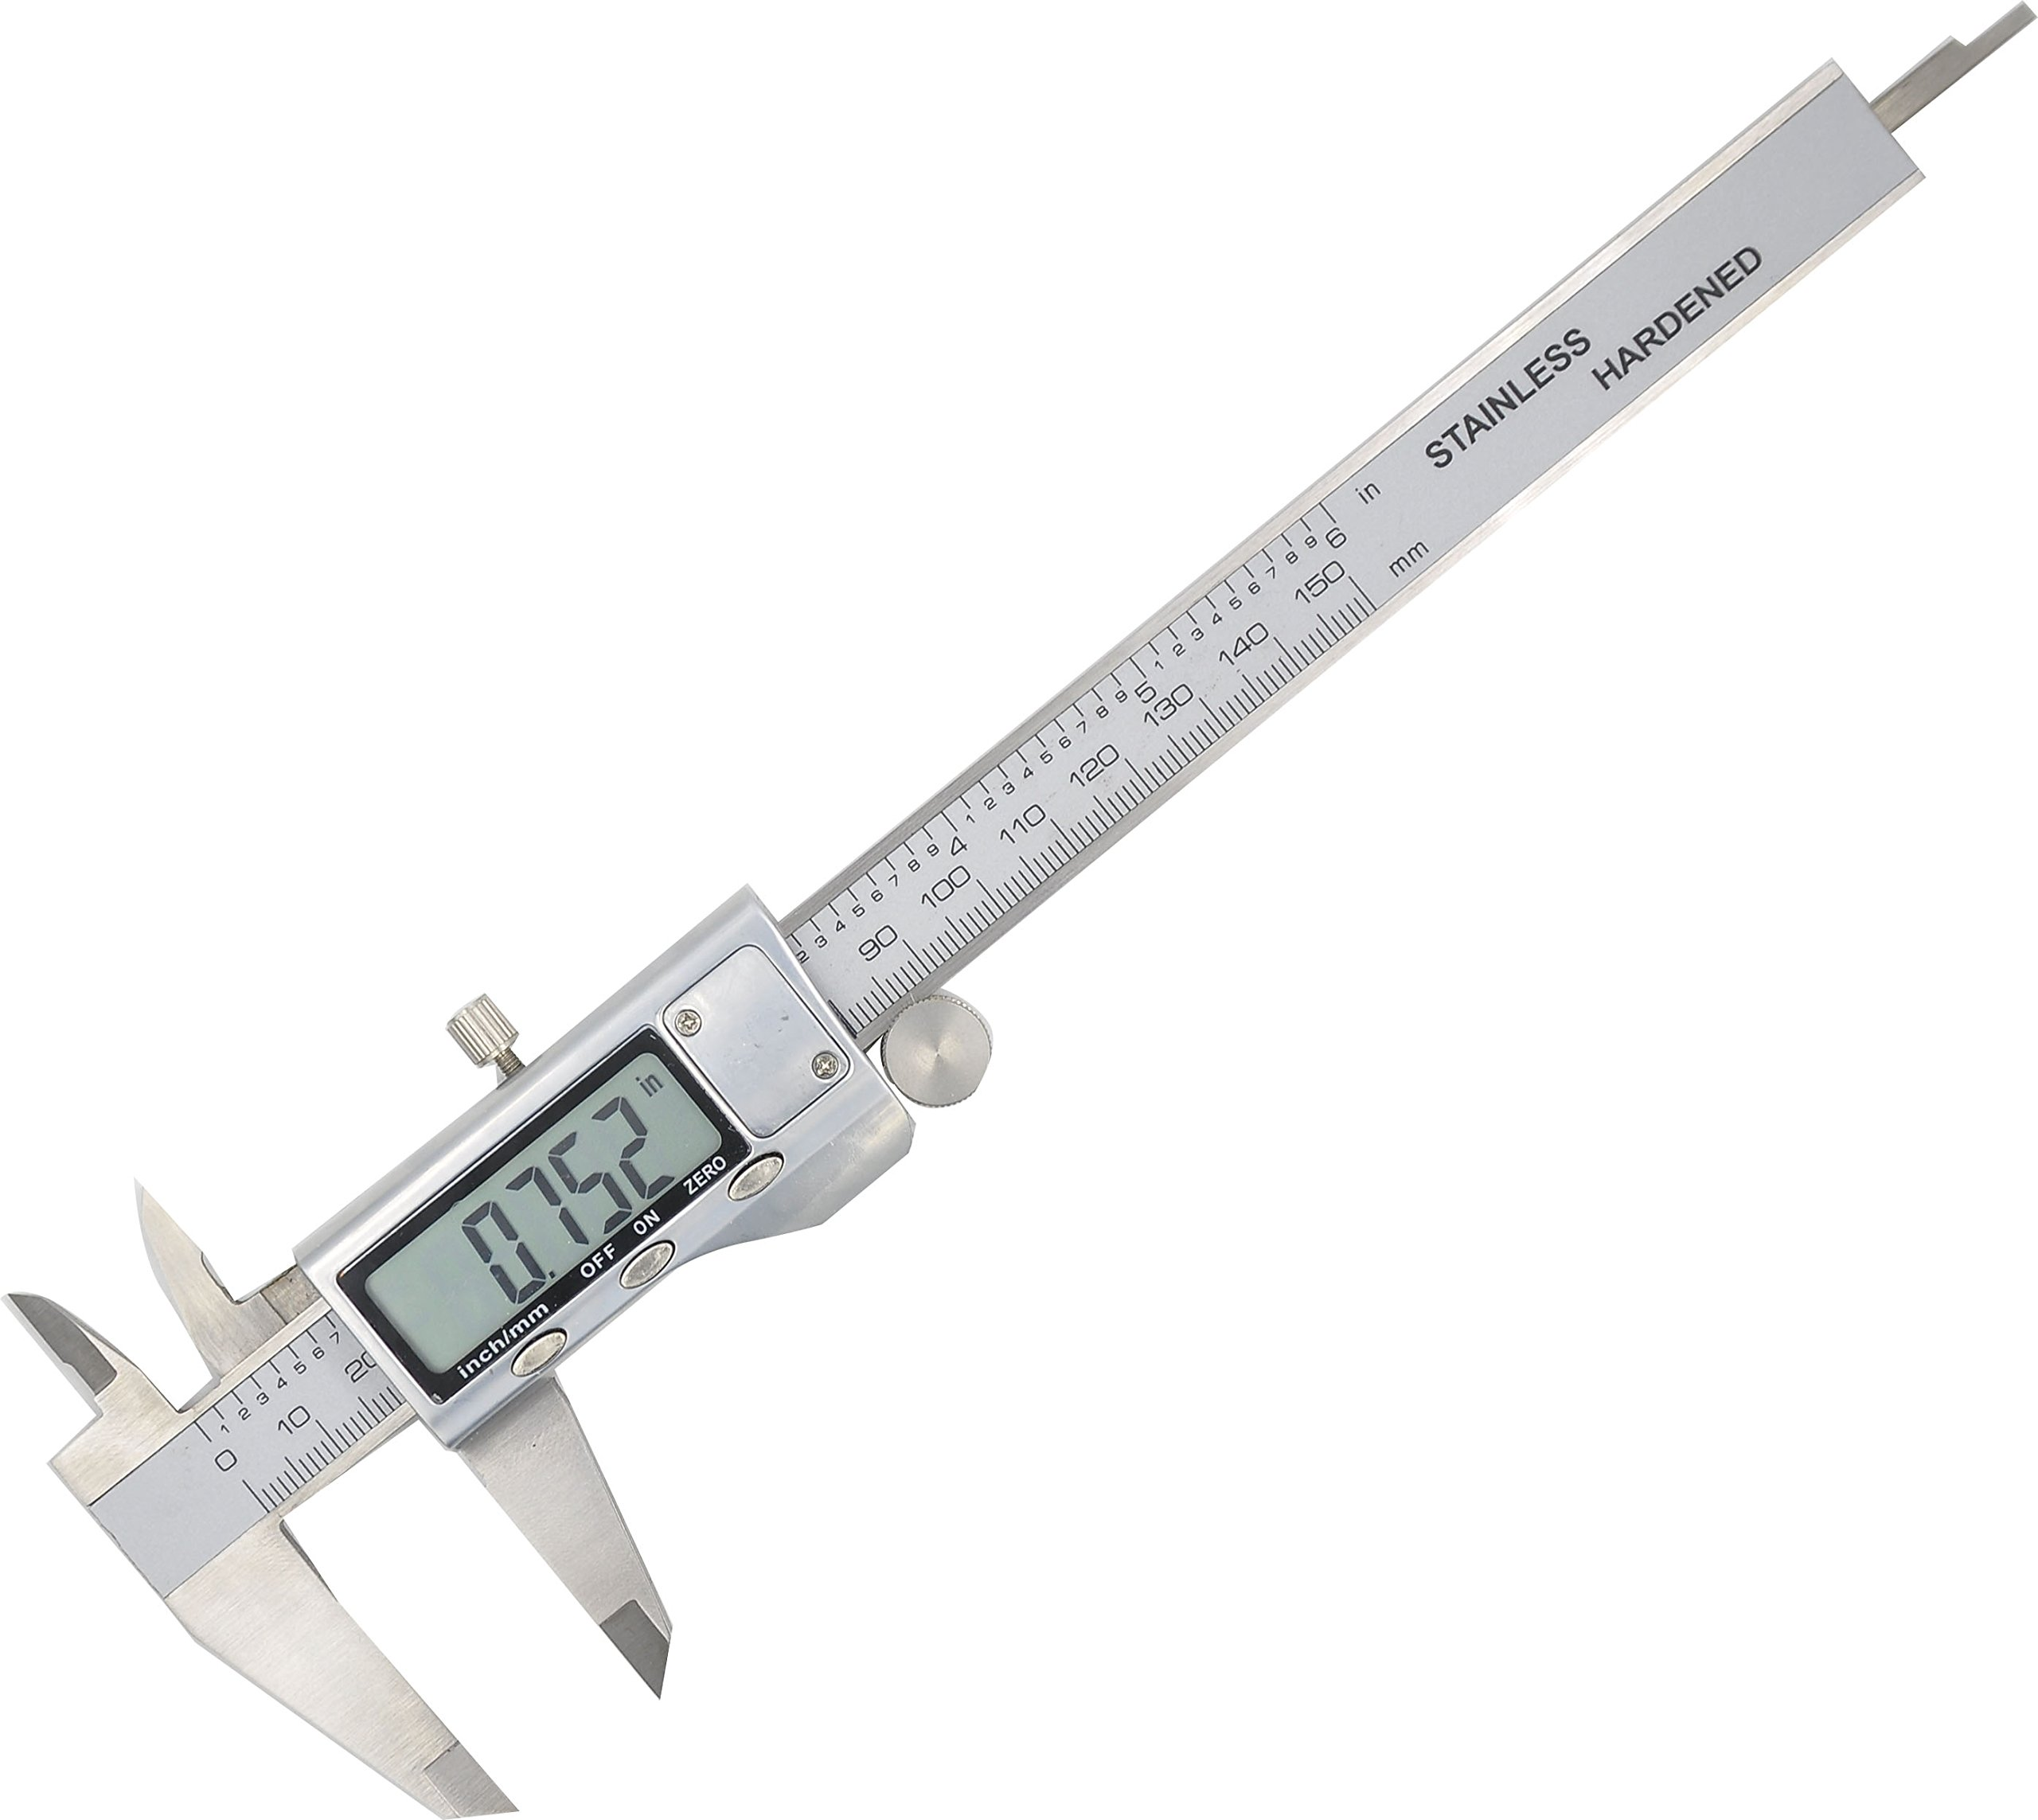 Electronic Digital Caliper - Bovini Caliper Measuring Tool in Inches & Millimeters Conversion 0-6 Inch/150 mm Stainless Steel Auto off Measuring Tool For Dimensions, Thickness, Depth, Diameter